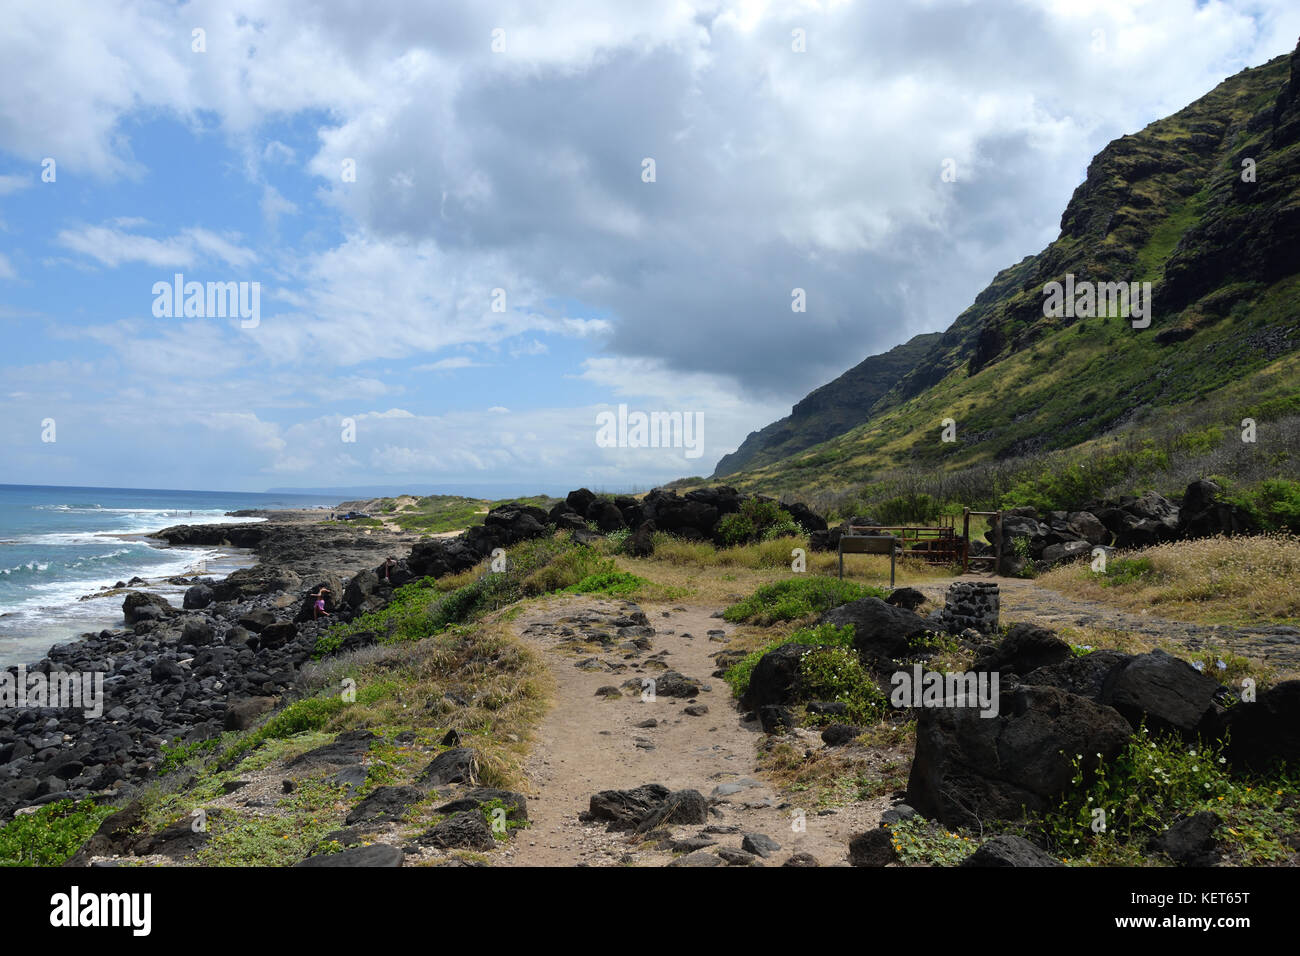 Hiking on Ka'ena Point Trail, Oahu HawaiiStock Photo